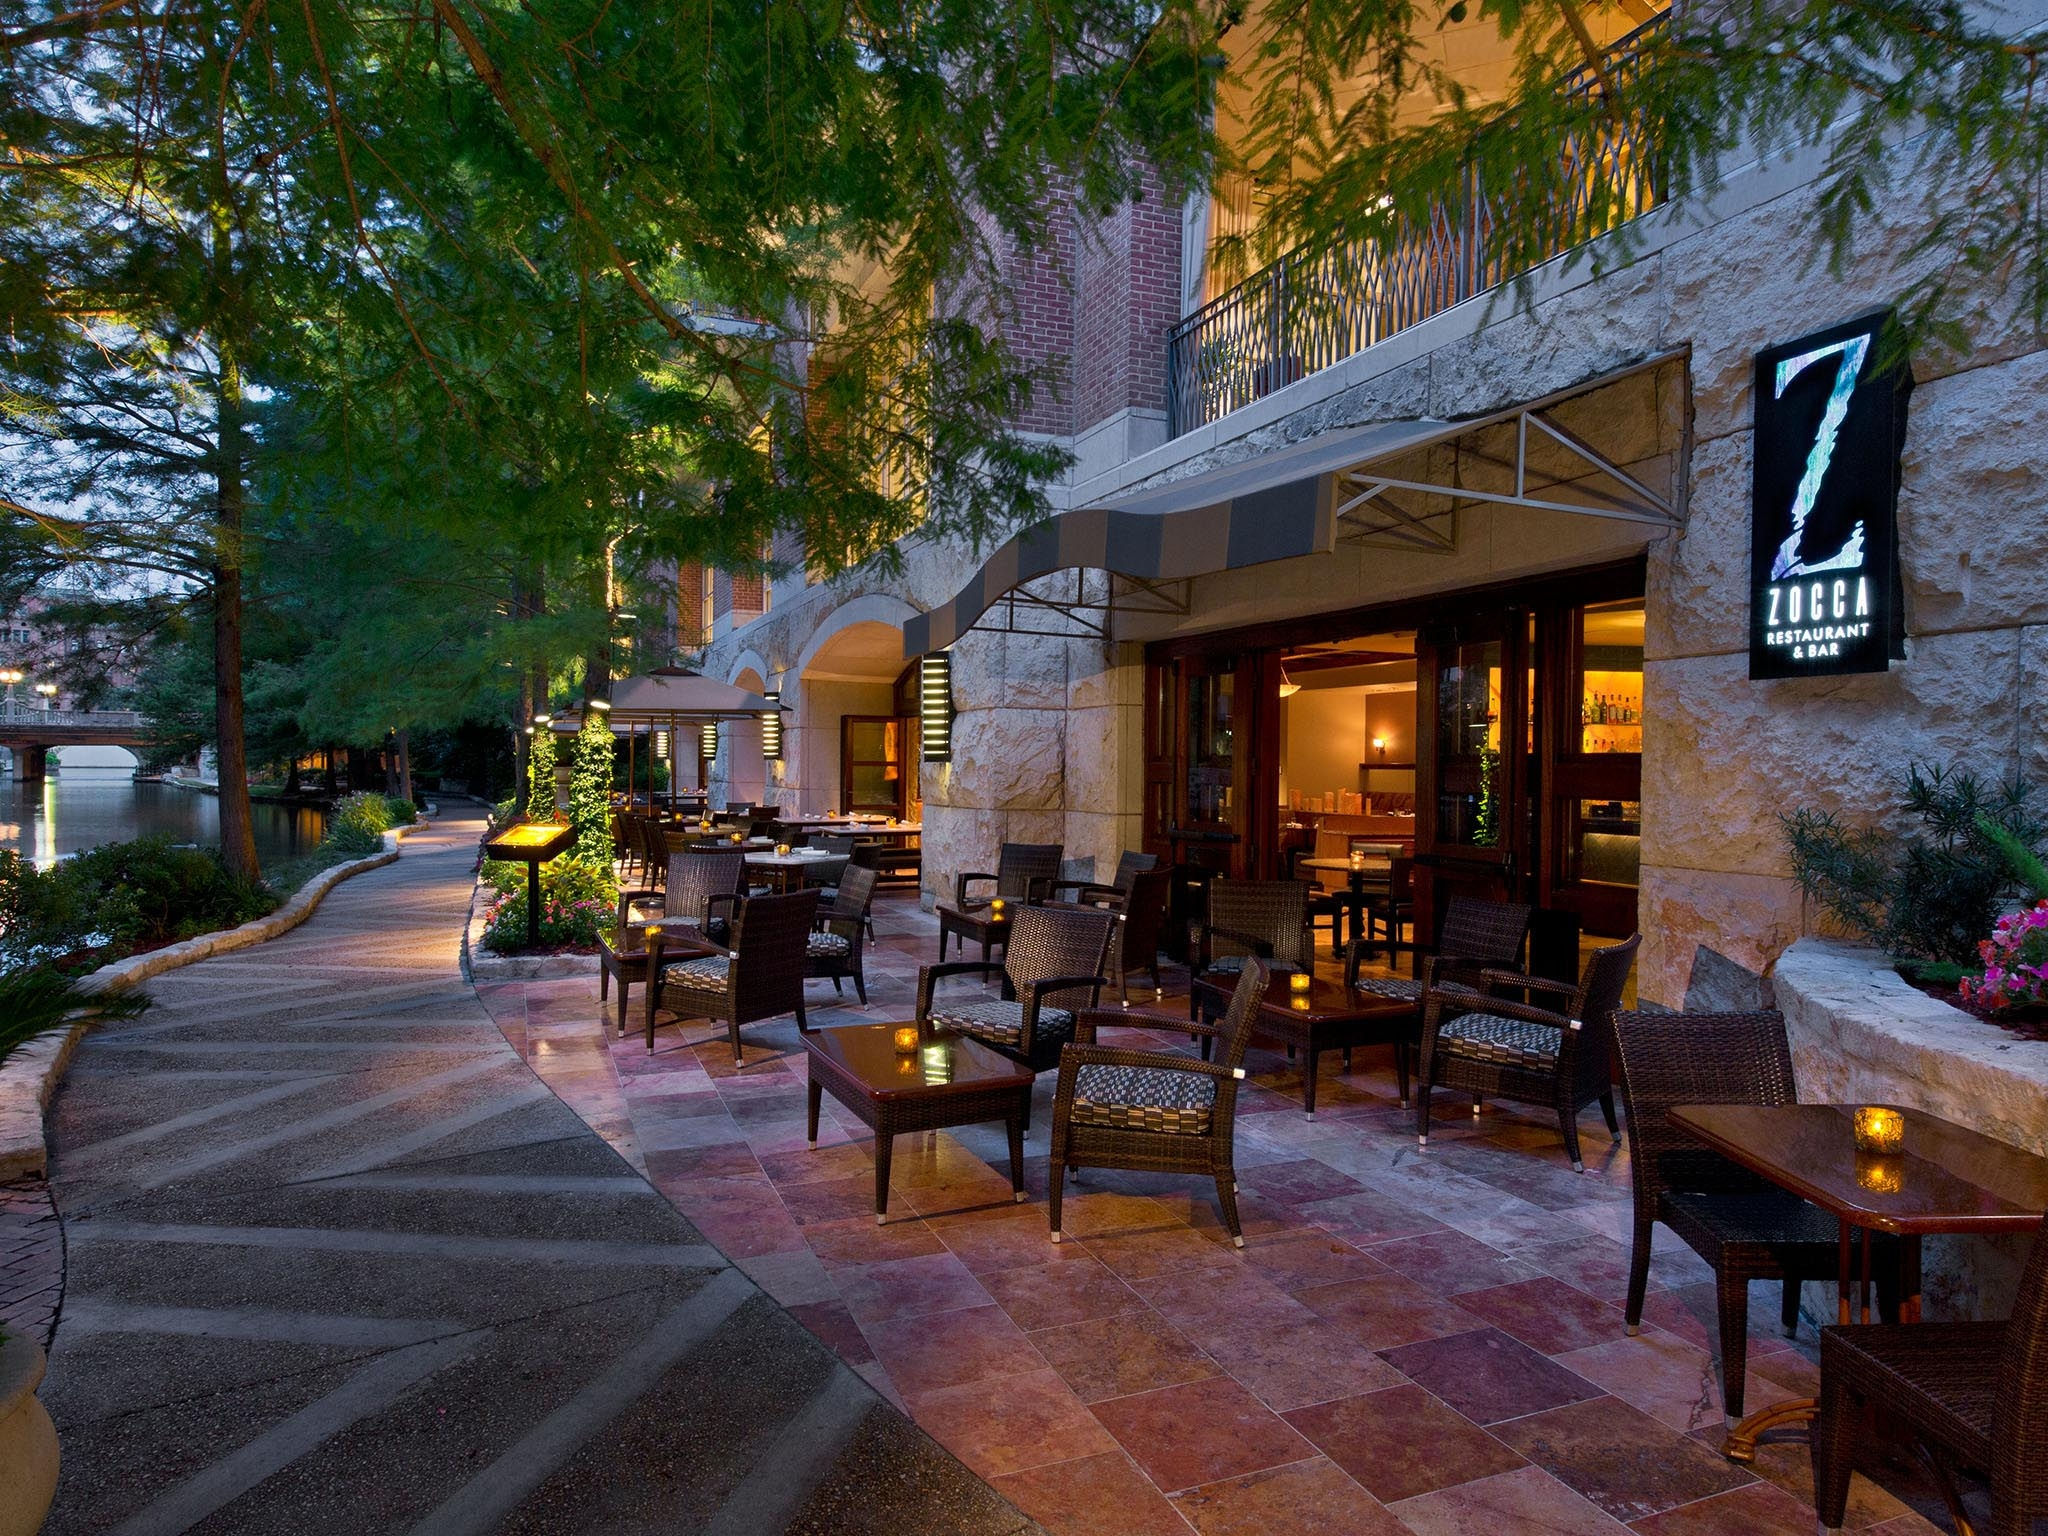 San Antonio Riverwalk Restaurants The Westin Riverwalk